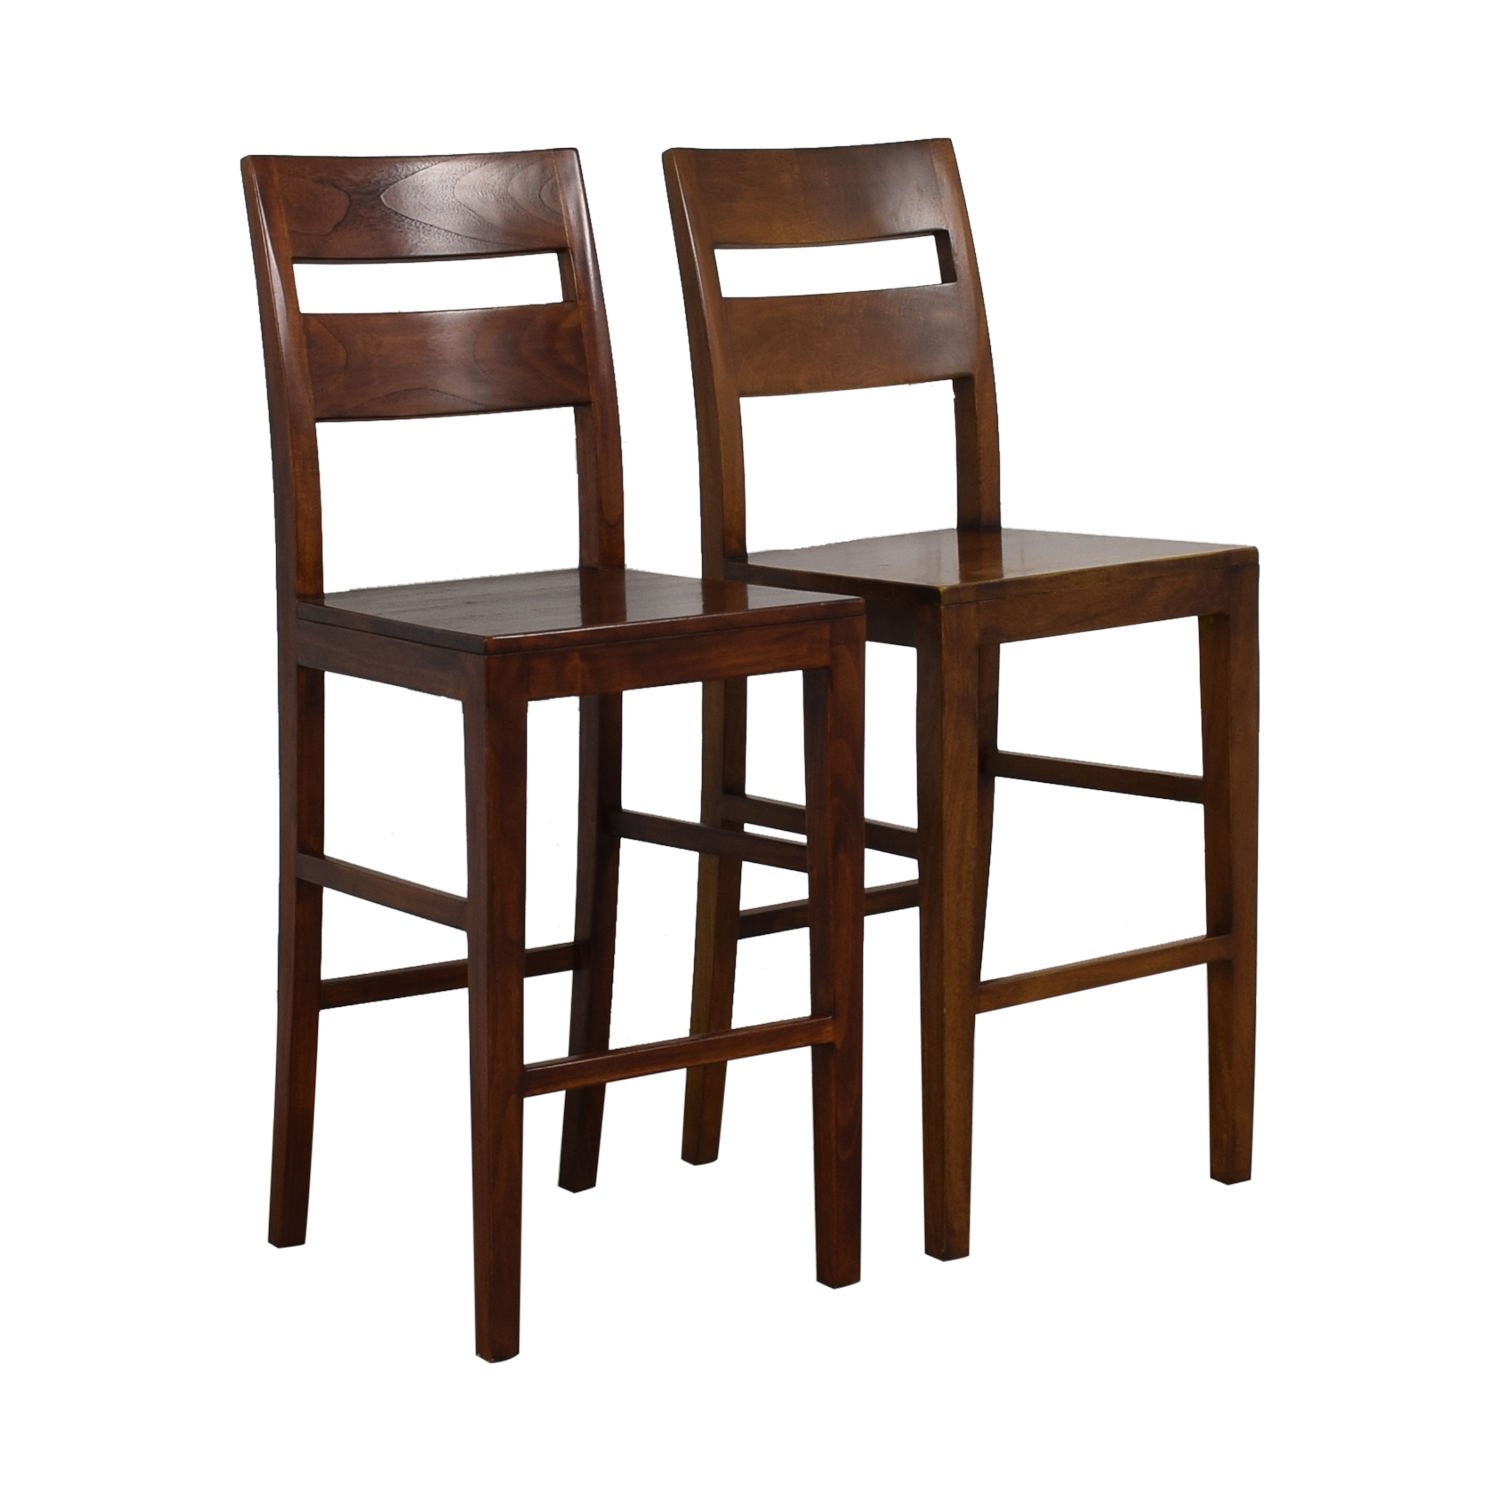 Crate & Barrel Counter Breakfast Bar Stools / Stools